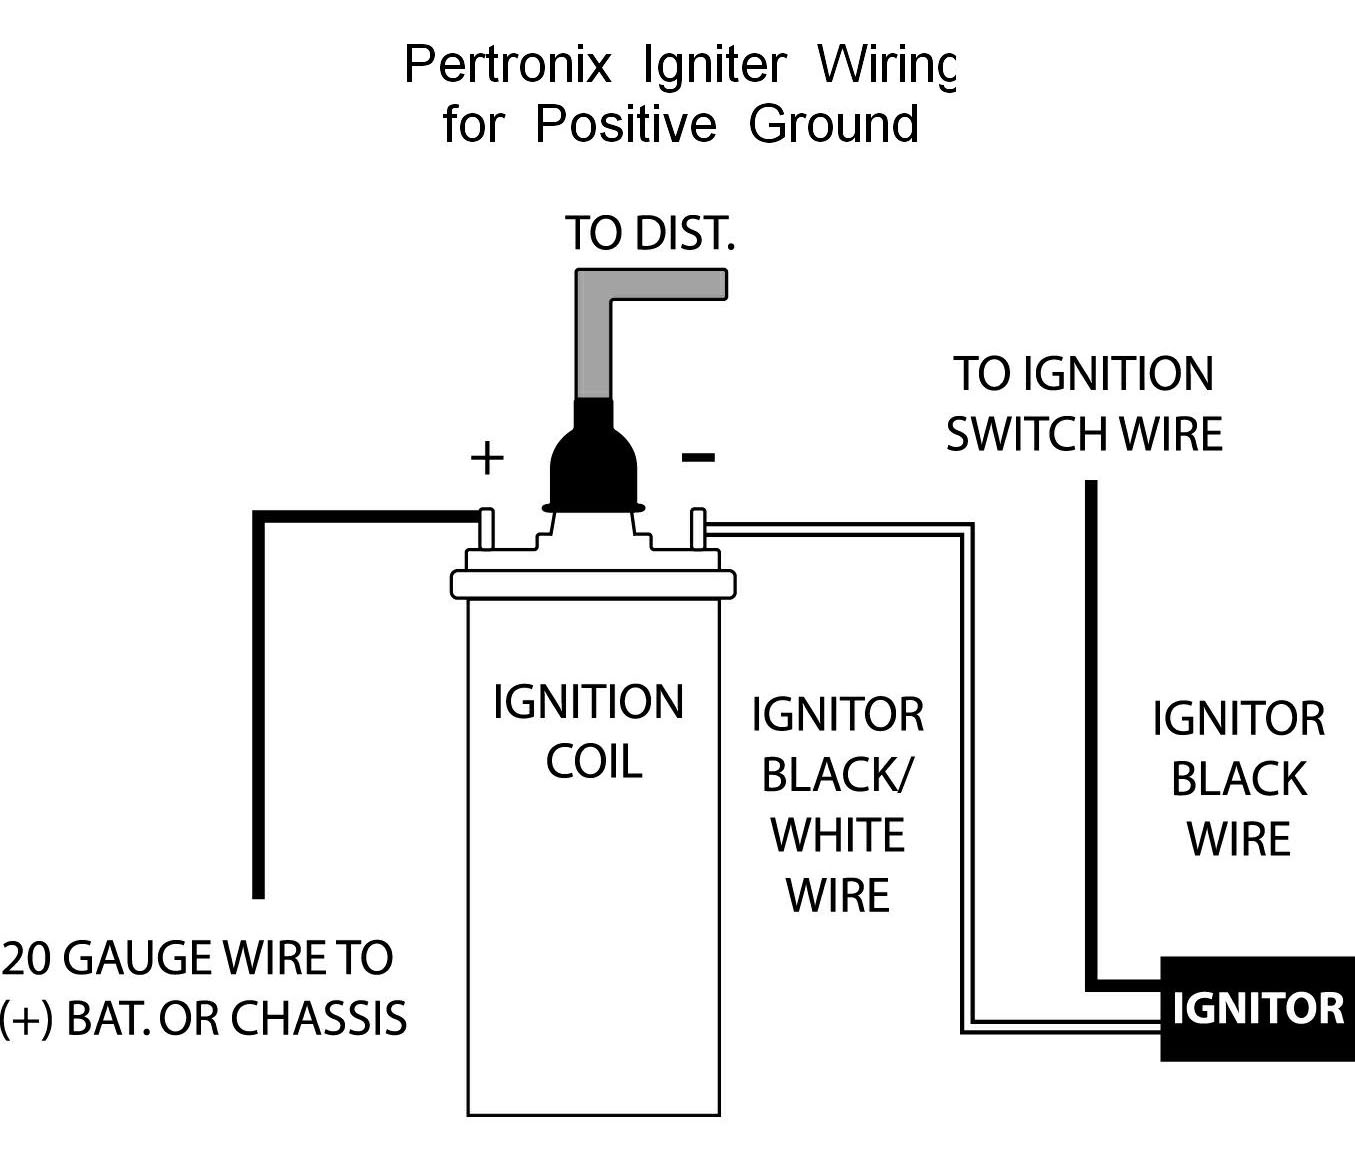 hight resolution of pertronix coil wiring diagram wiring diagram imp coil wiring diagram vw bug coil wiring diagram